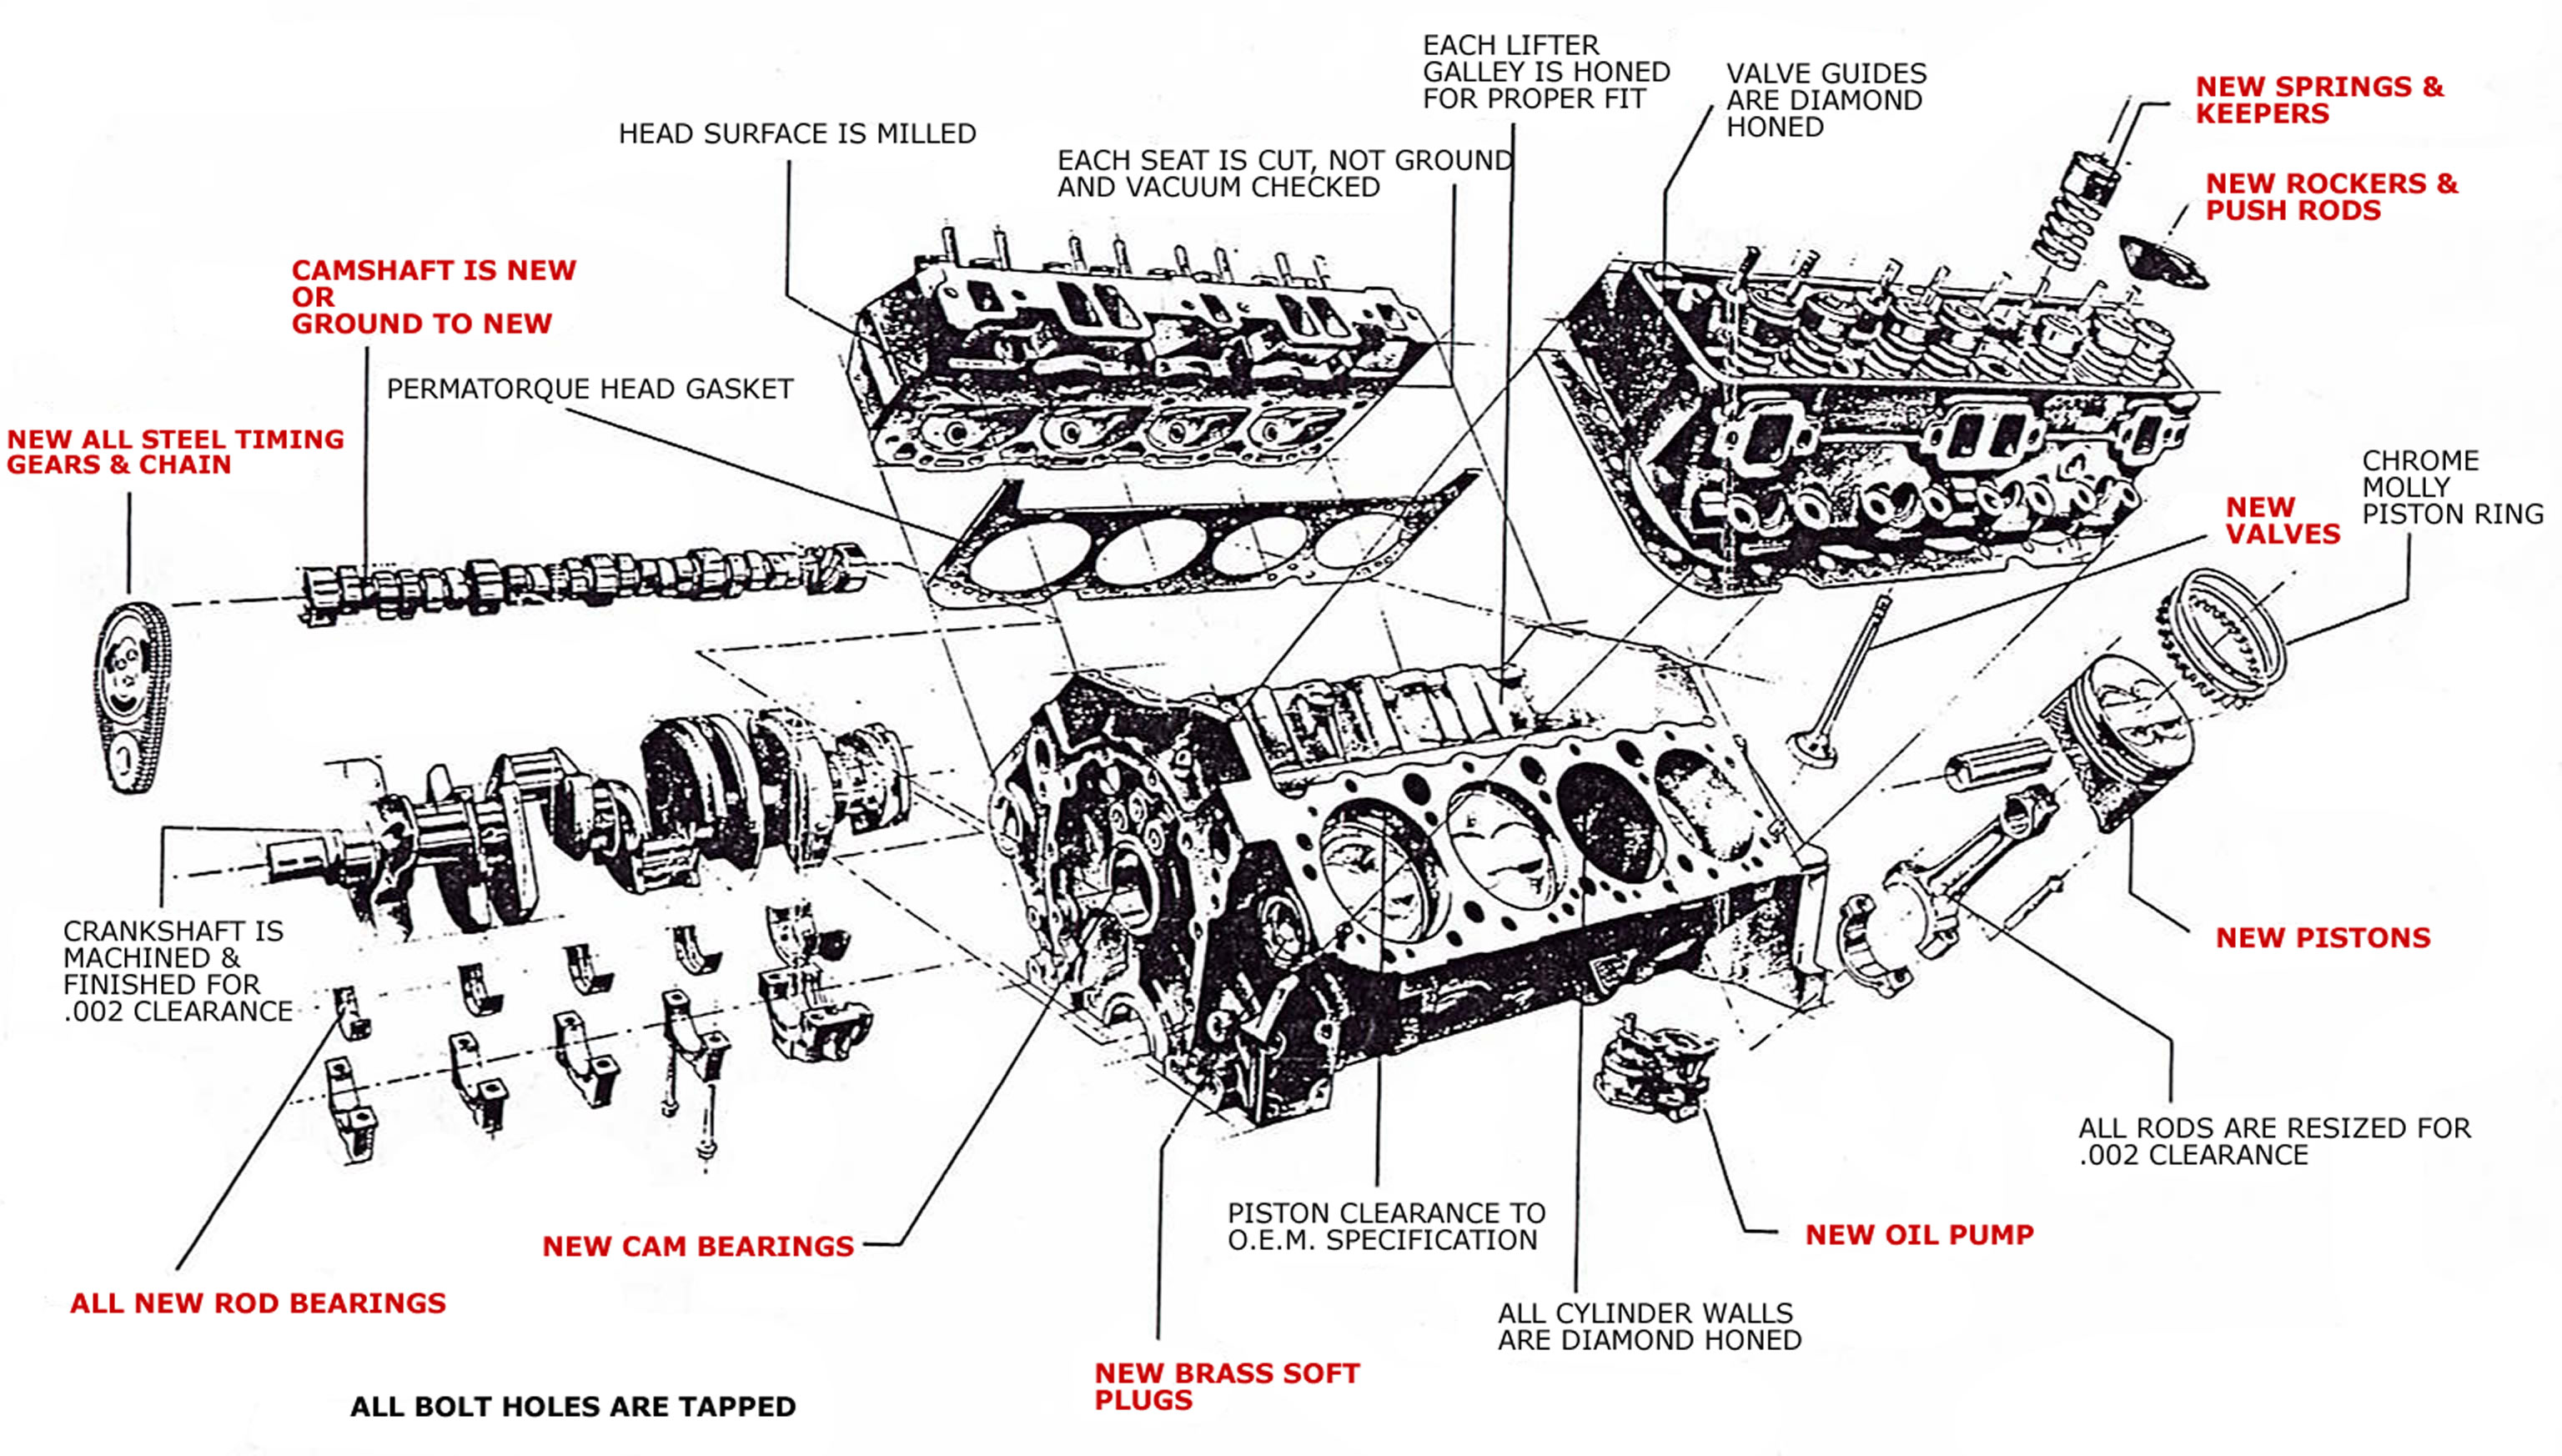 V8 Engine Exploded View Diagram Car on 350 chevy engine wiring diagram